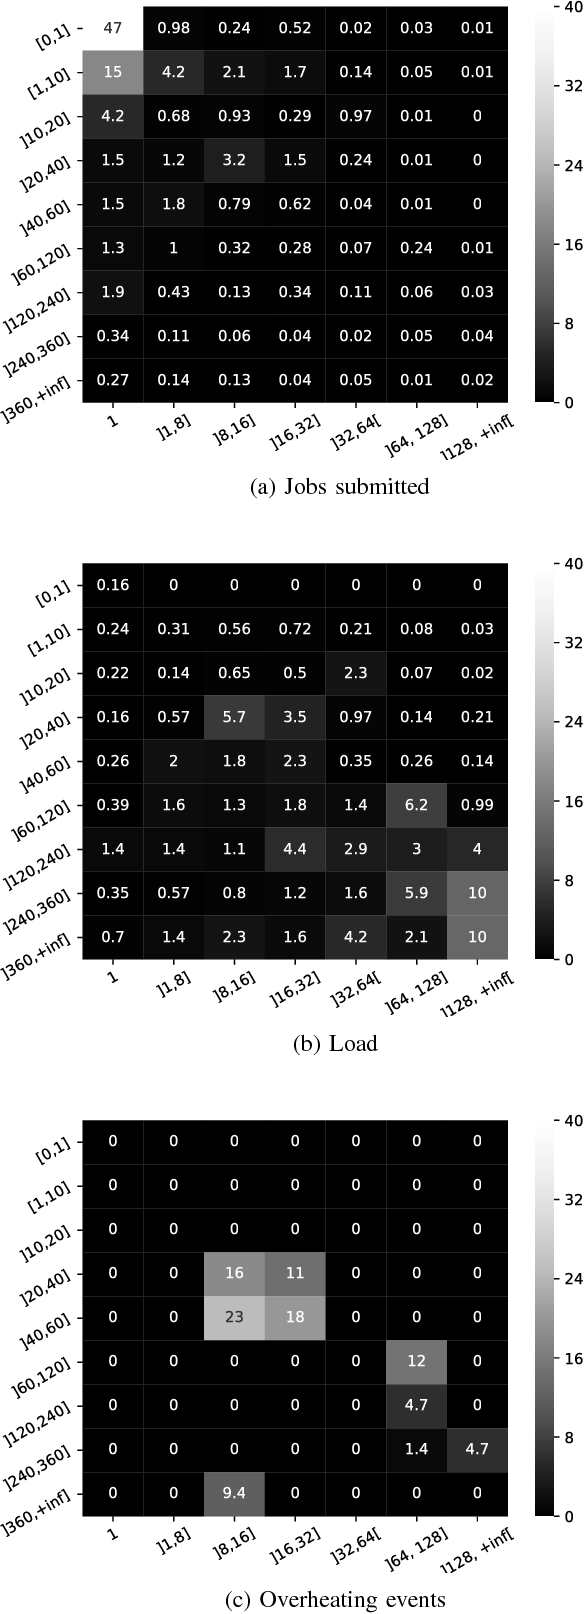 CPU Overheating Characterization in HPC Systems: A Case Study